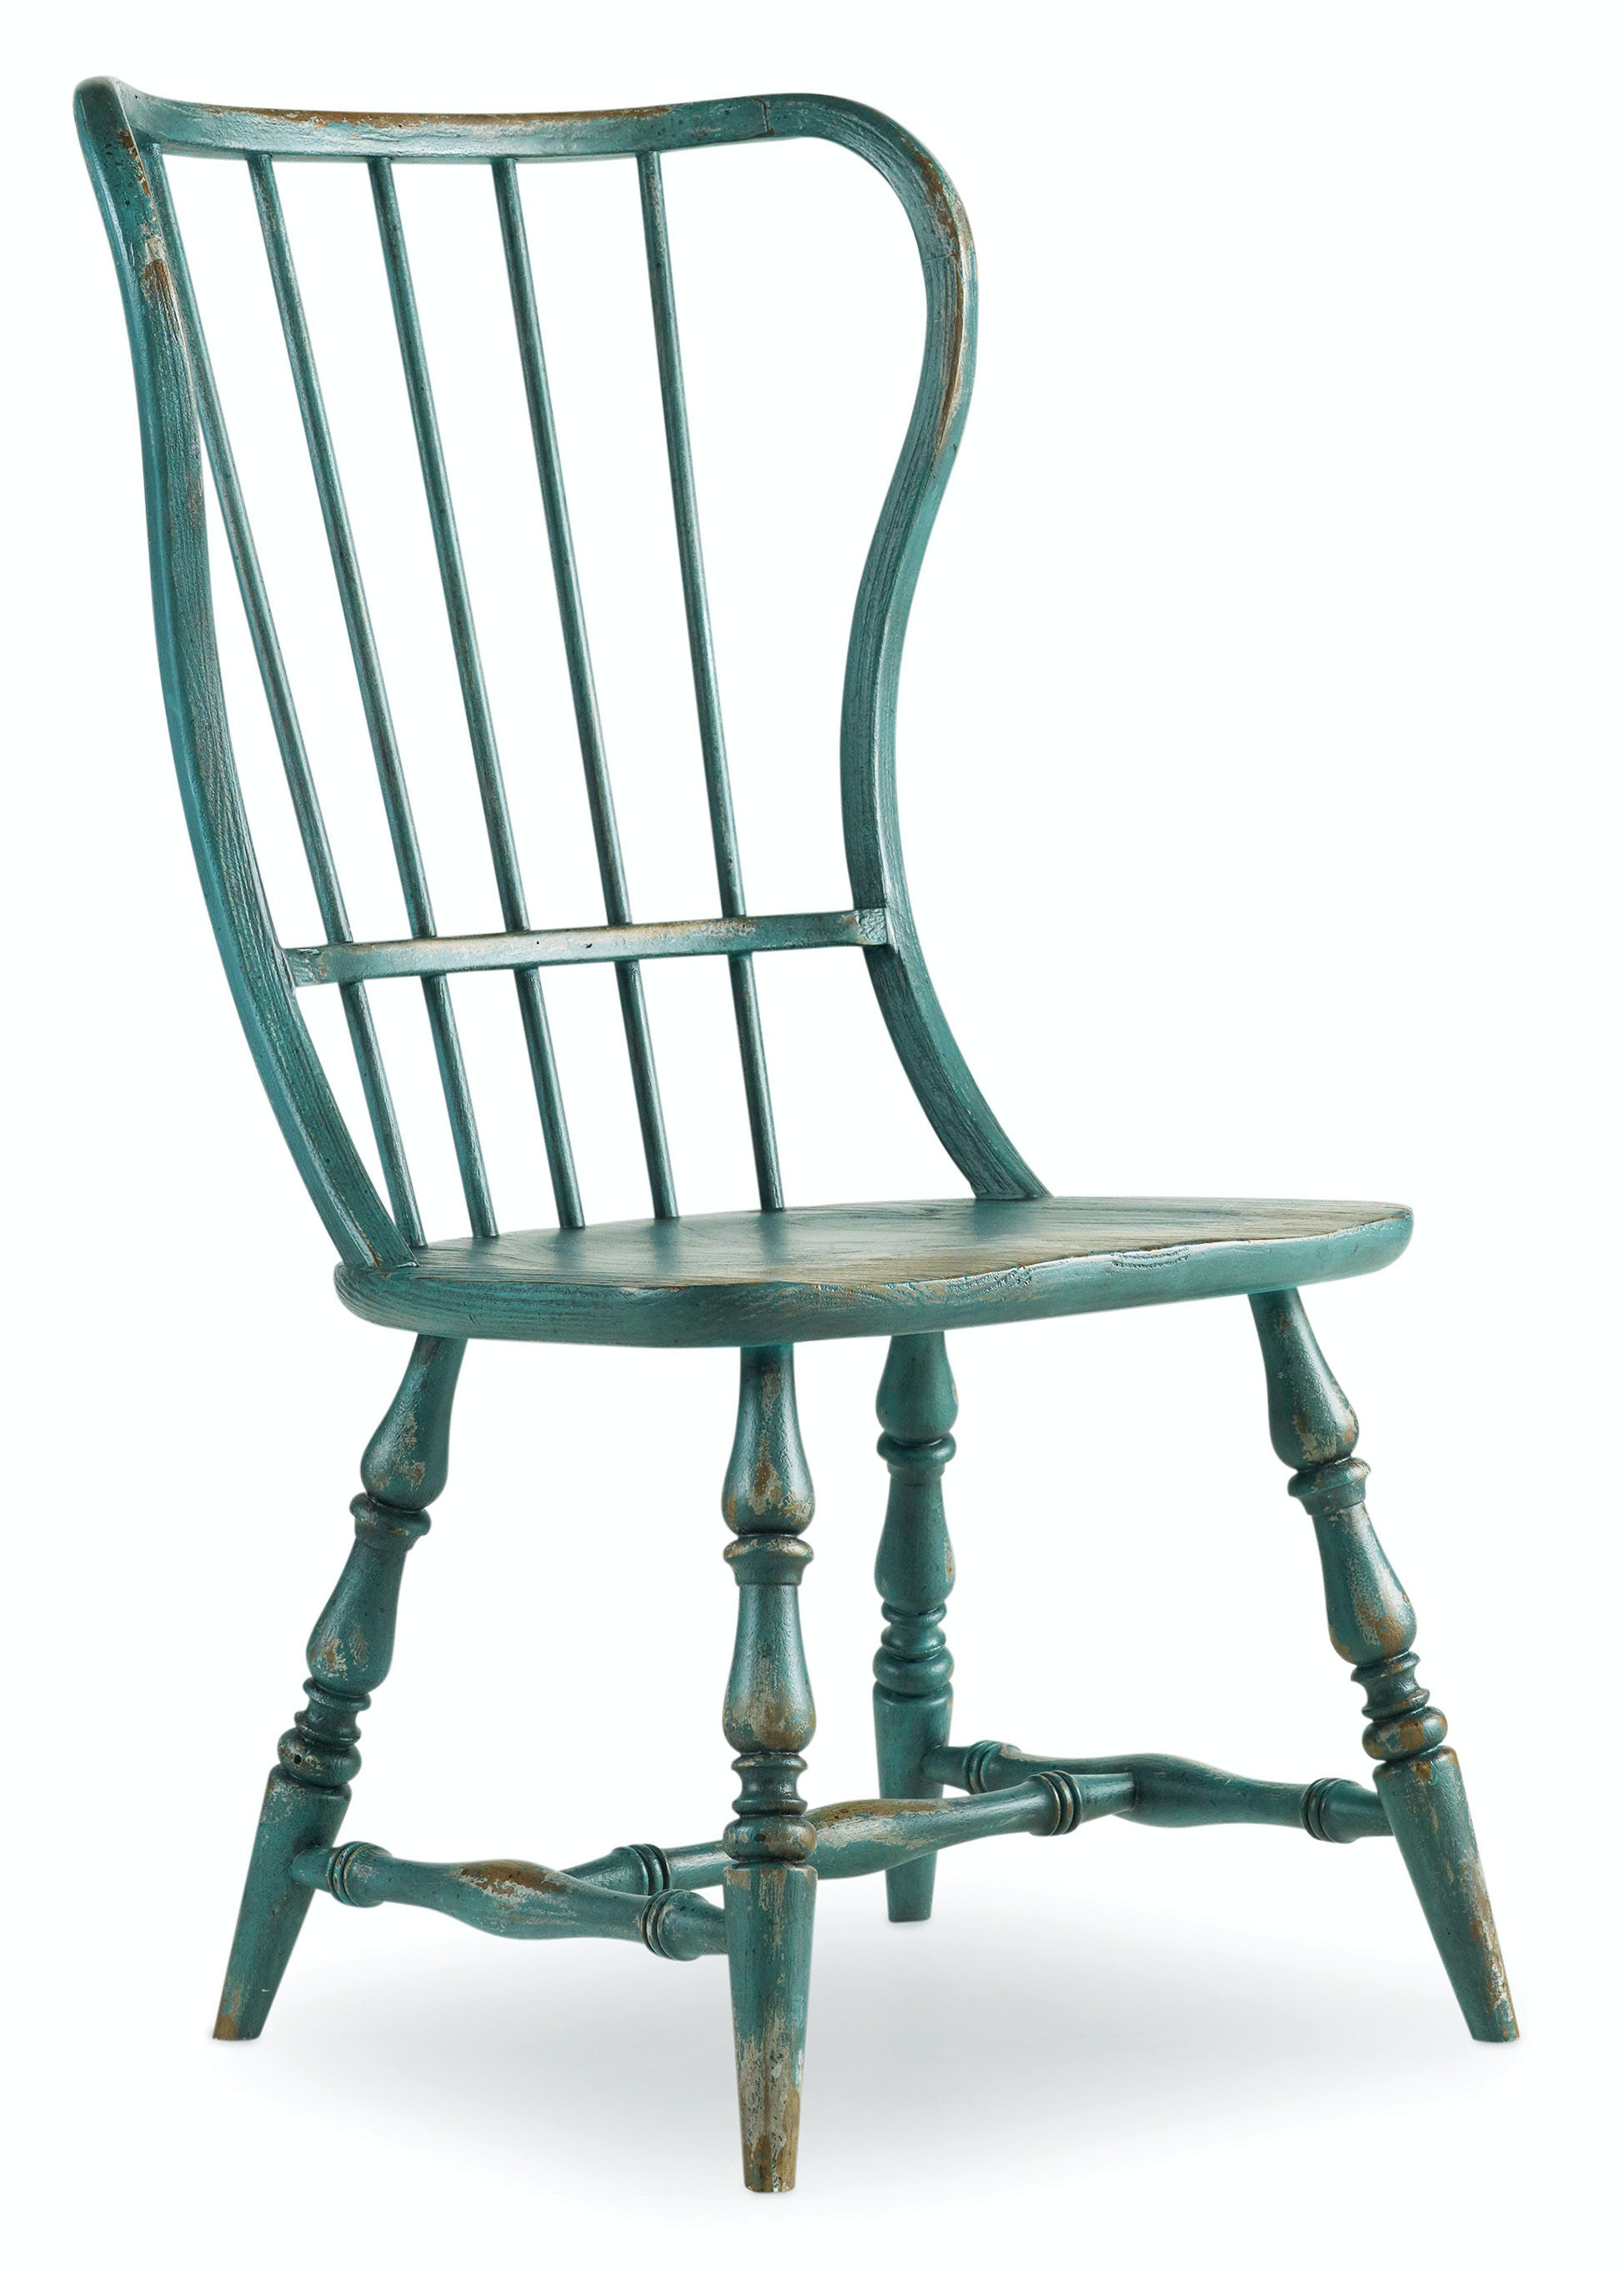 Hooker Furniture Sanctuary Spindle Side Chair 5405-75310  sc 1 st  Hooker Furniture & Hooker Furniture Dining Room Sanctuary Spindle Side Chair 5405-75310